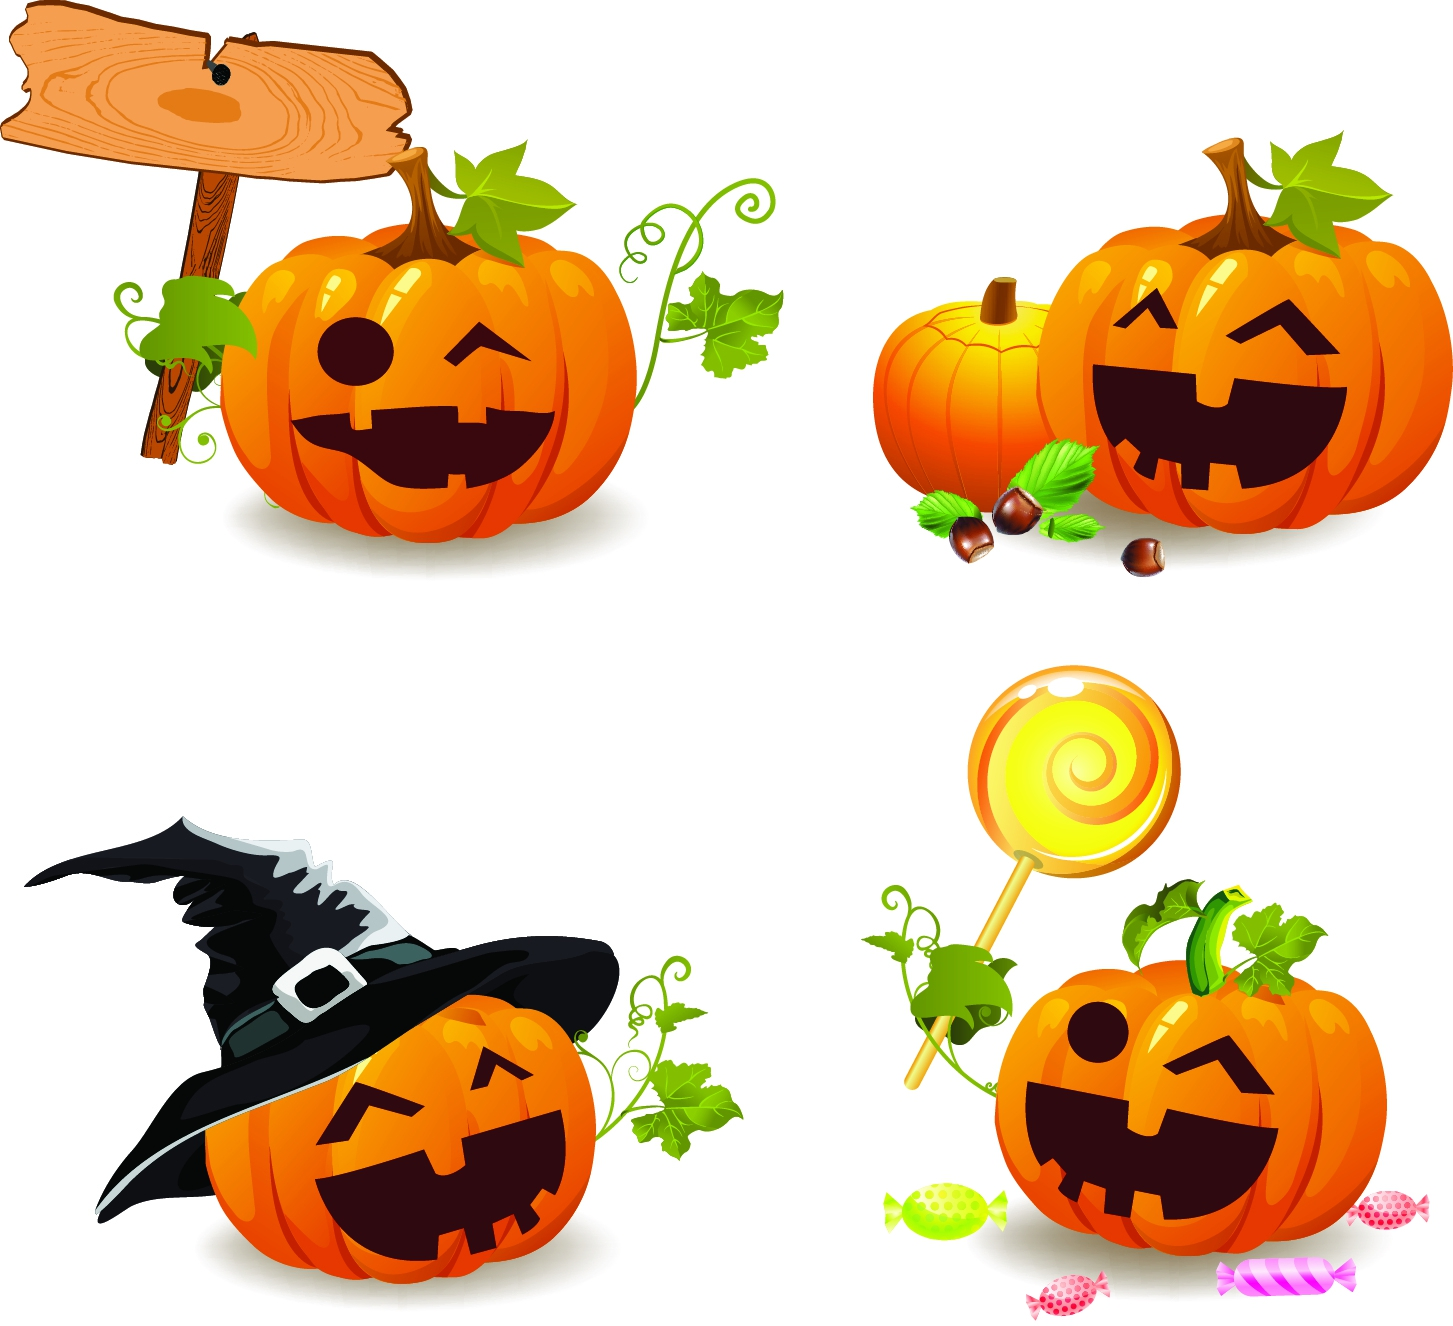 Halloween Ecommerce in 2013: Not Just Costumes